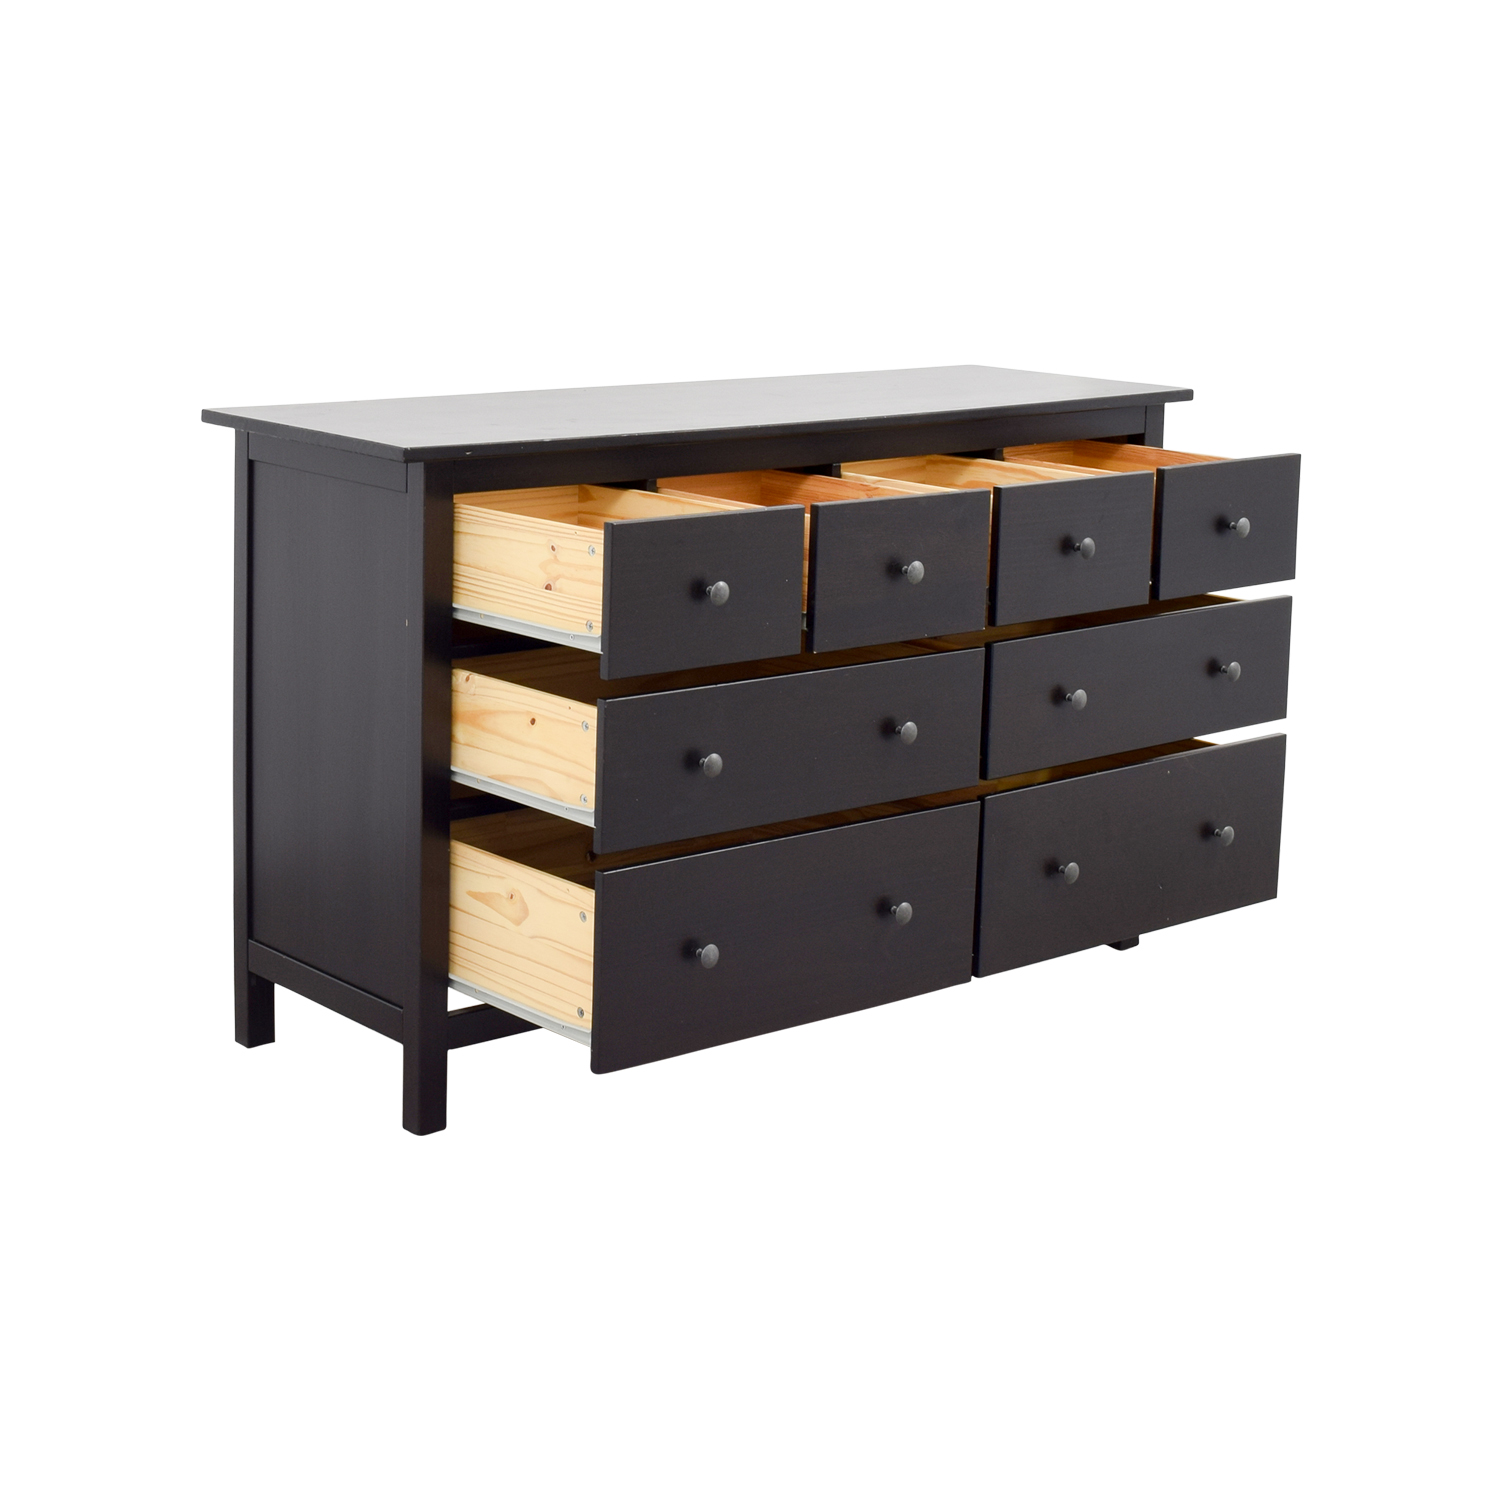 28 off ikea ikea hemnes black dresser storage for Ikea comodino hemnes